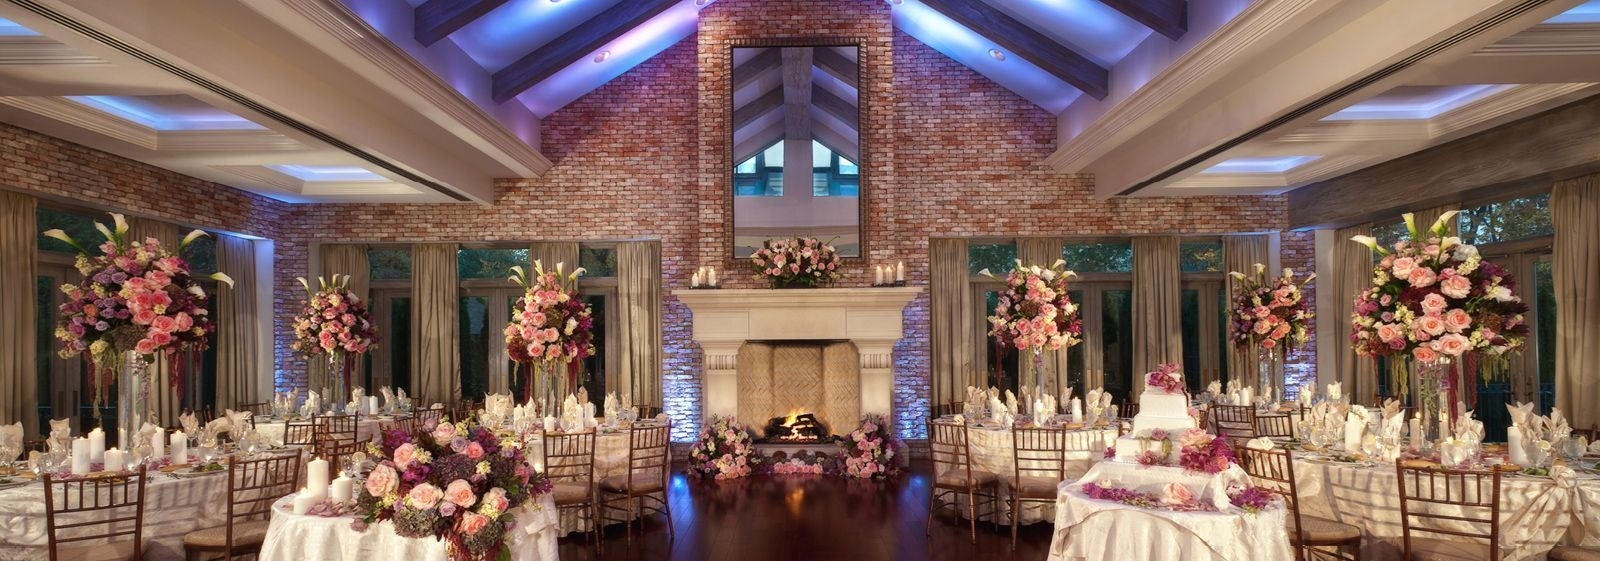 The Somerley An Elegantly Private Long Island Wedding Event Venue Long Island Wedding Wedding Event Venues Wedding Venues Long Island